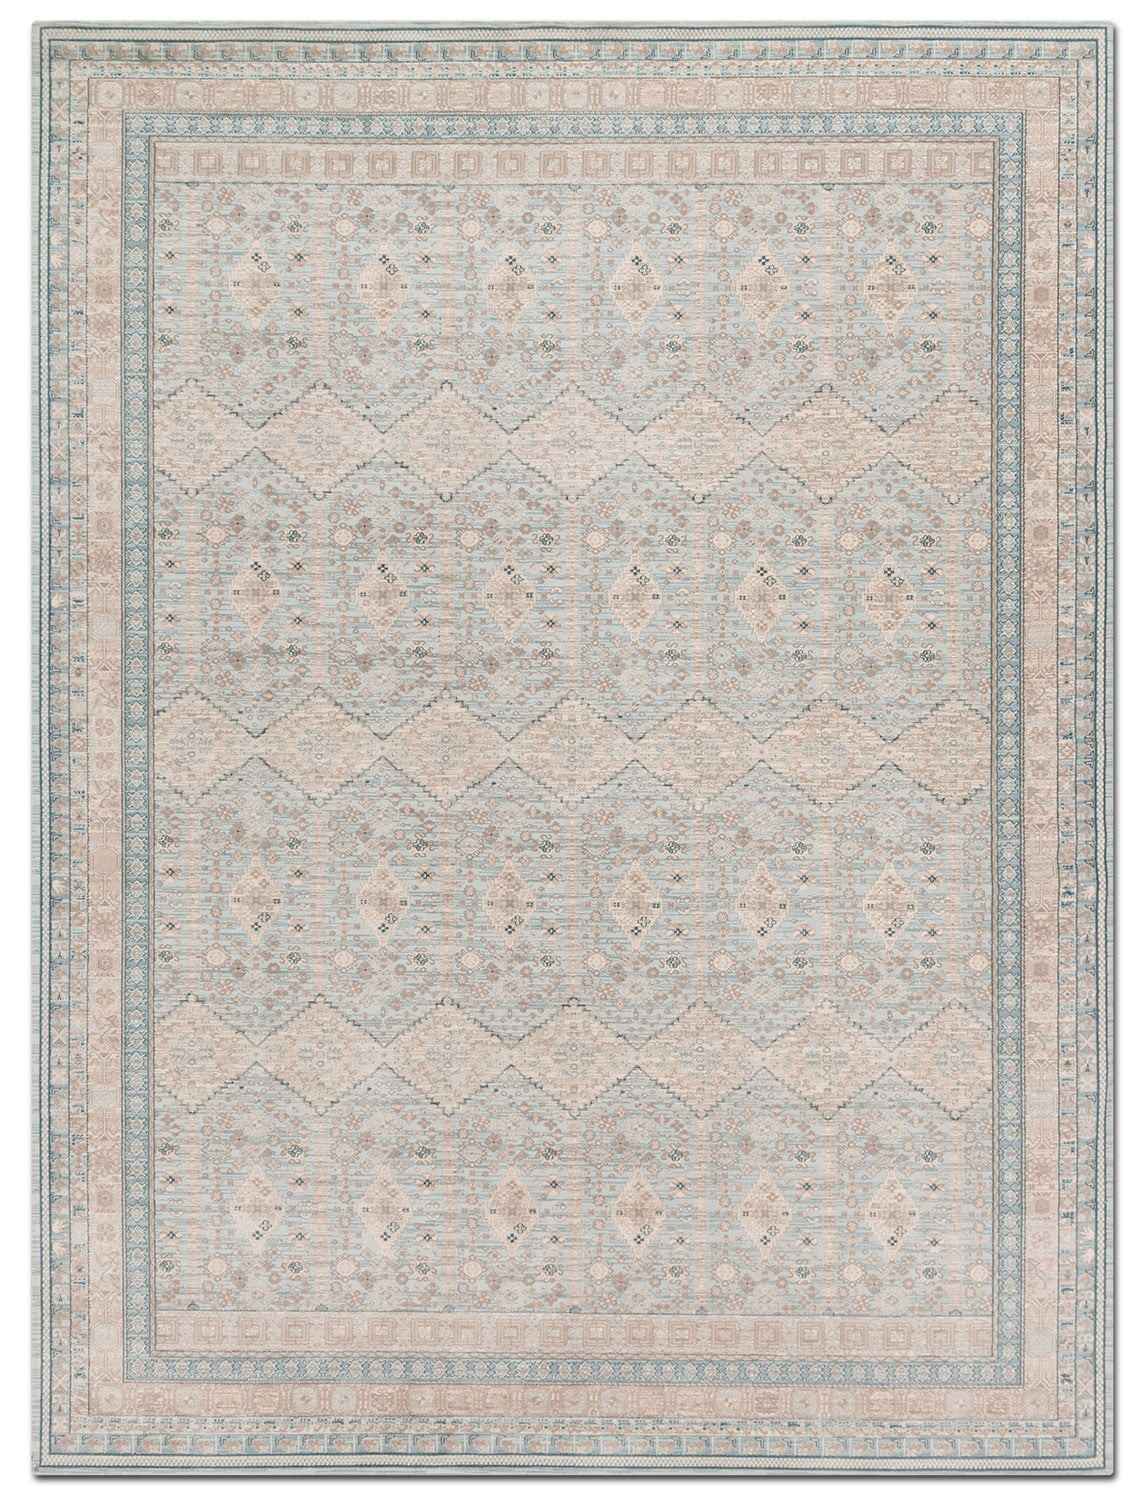 Rugs - Ella Rose 7' x 11' Rug - Mist and Stone